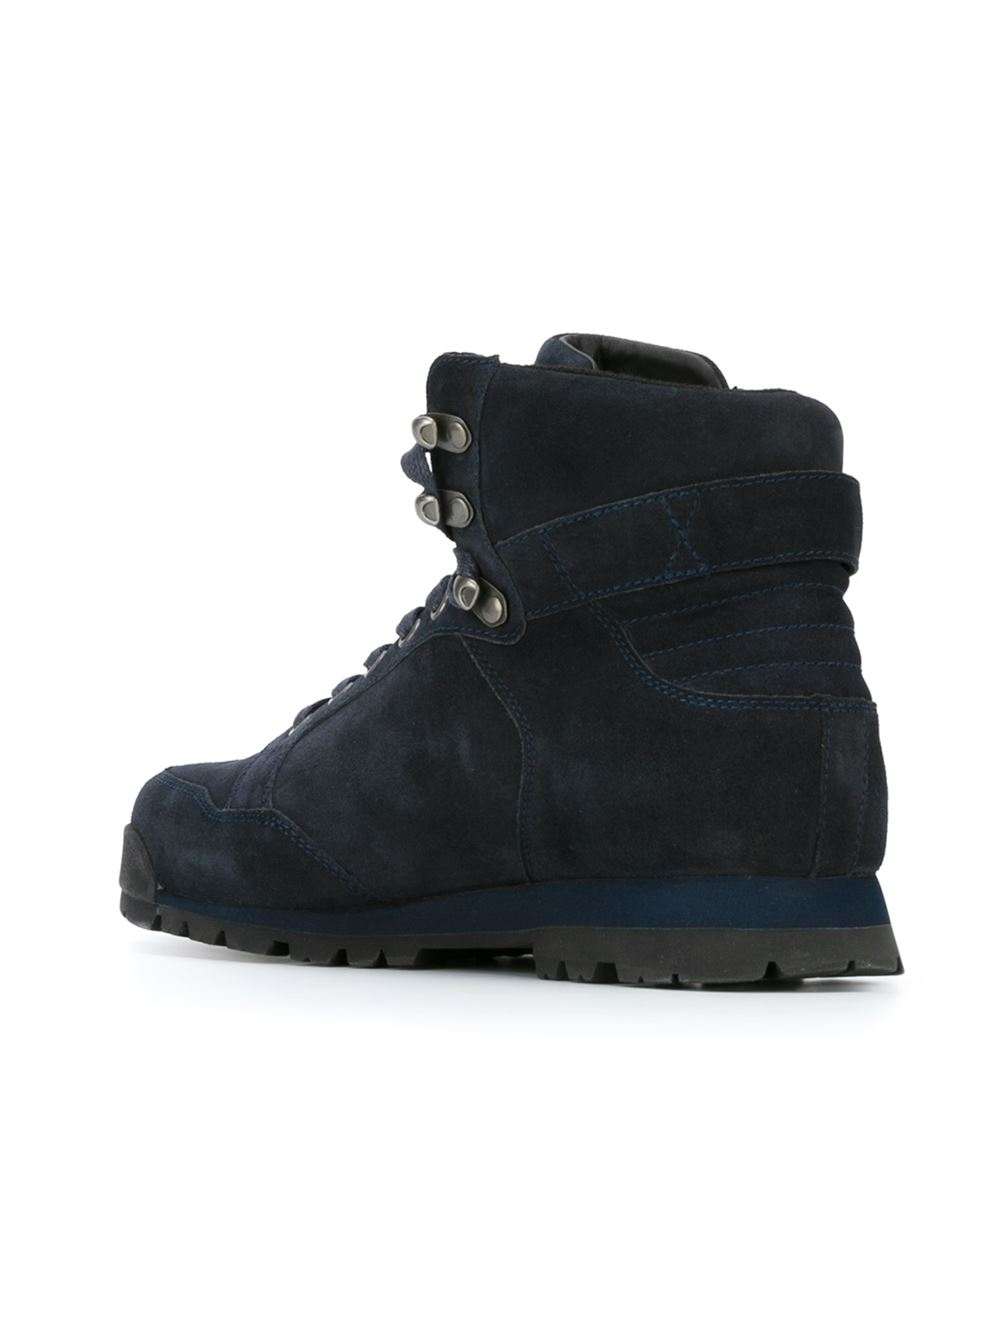 Armani Jeans Lace Up Boots In Blue For Men Lyst